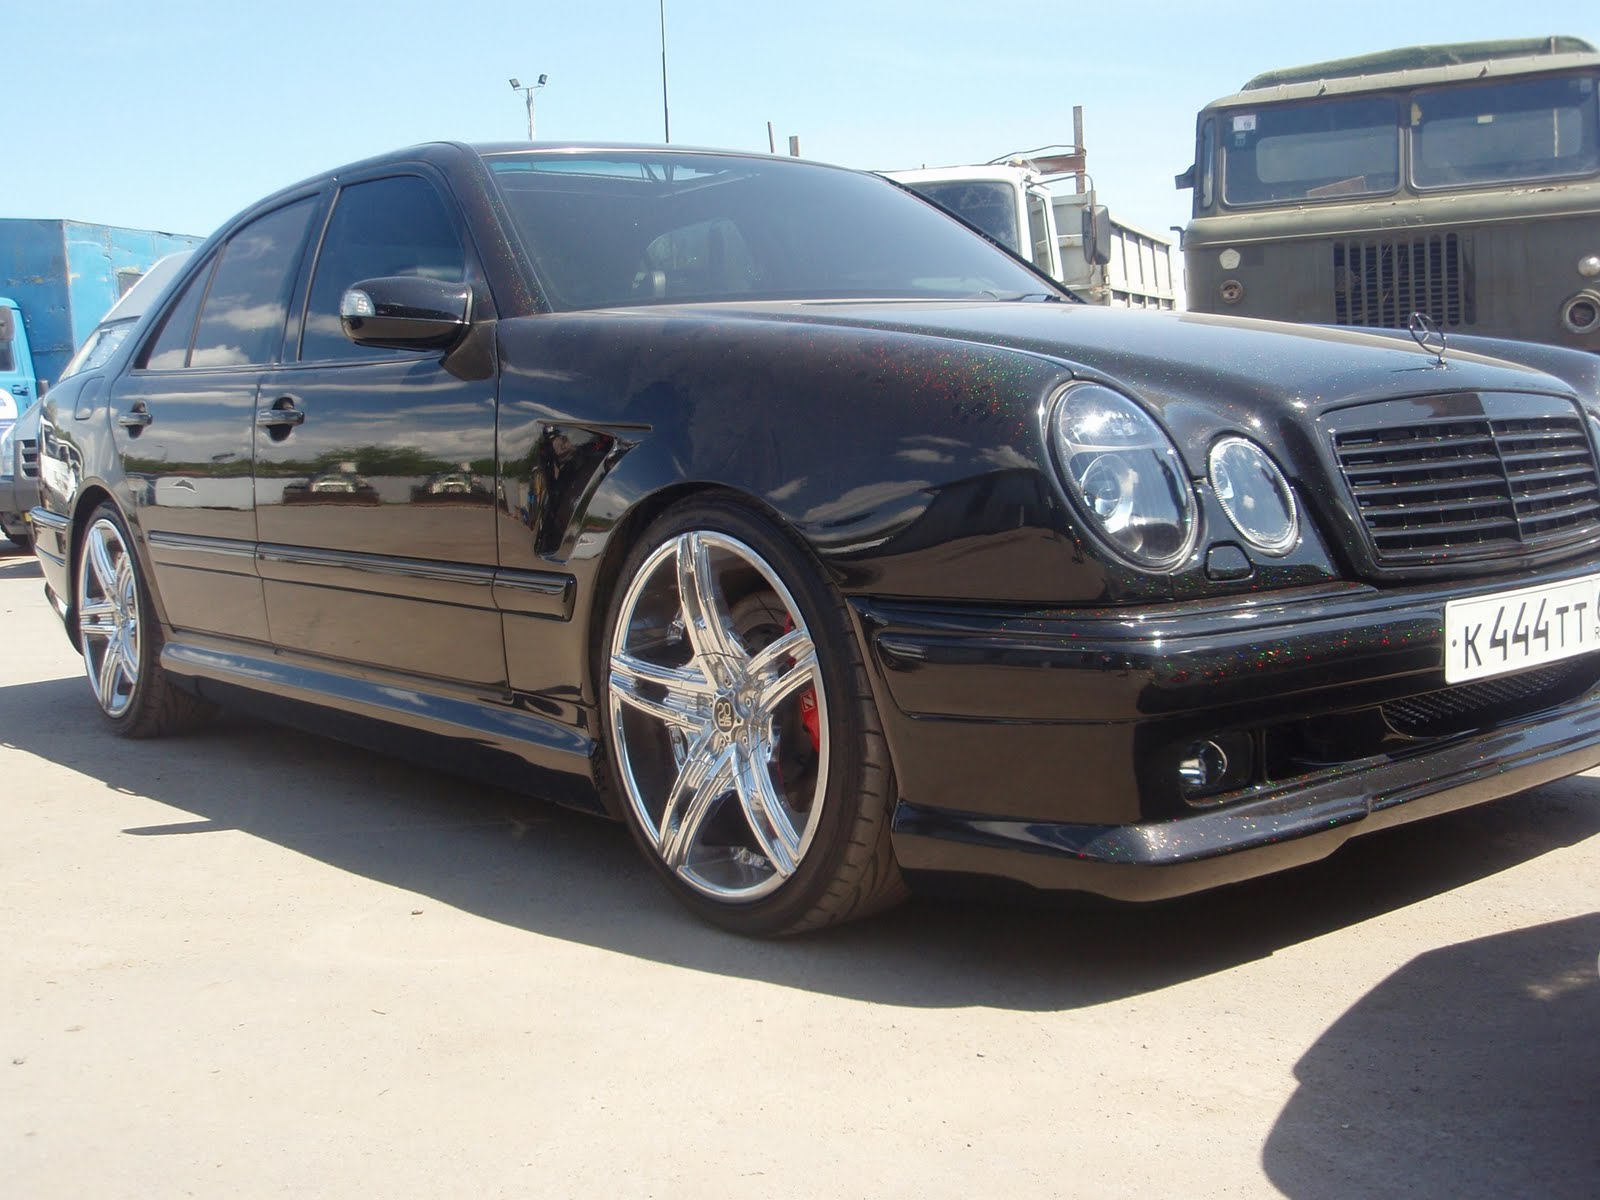 Mercedes benz w210 wald body kit benztuning for Mercedes benz 210